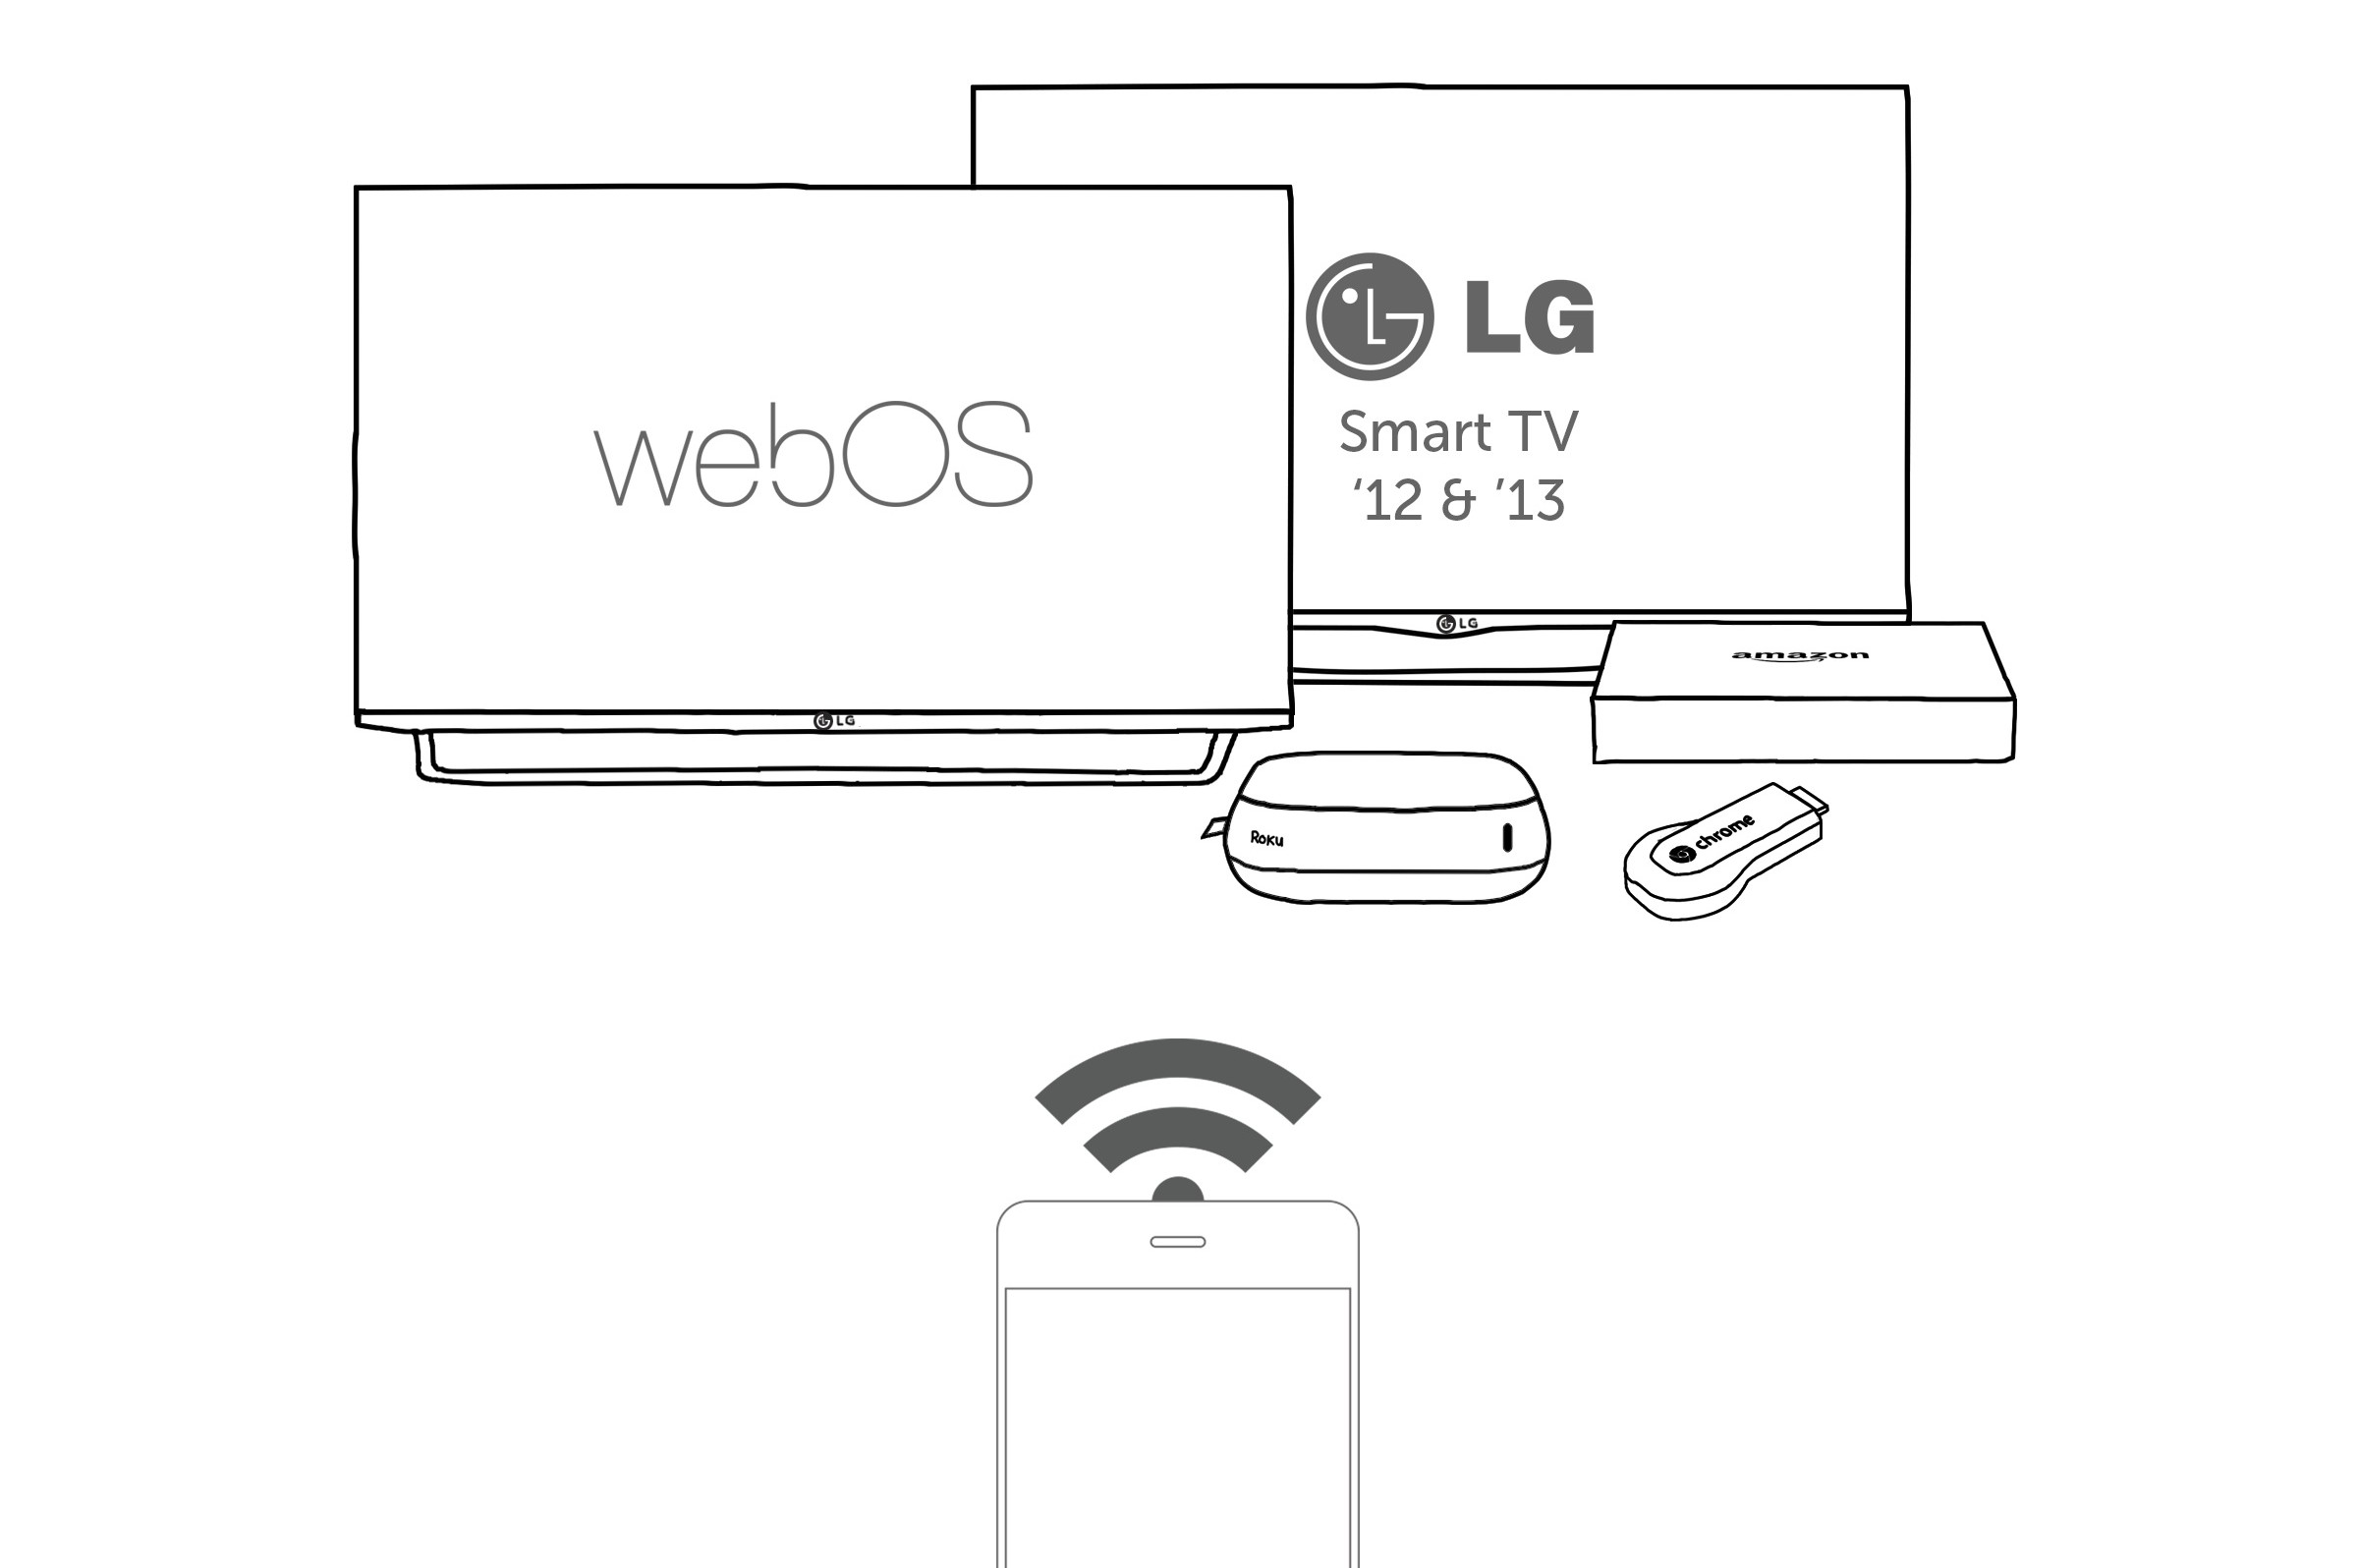 The Connect SDK currently supports webOS, Roku, Chromecast, Fire TV and older LG smart TVs. LG wants to add support for Apple TV and Samsung devices soon.